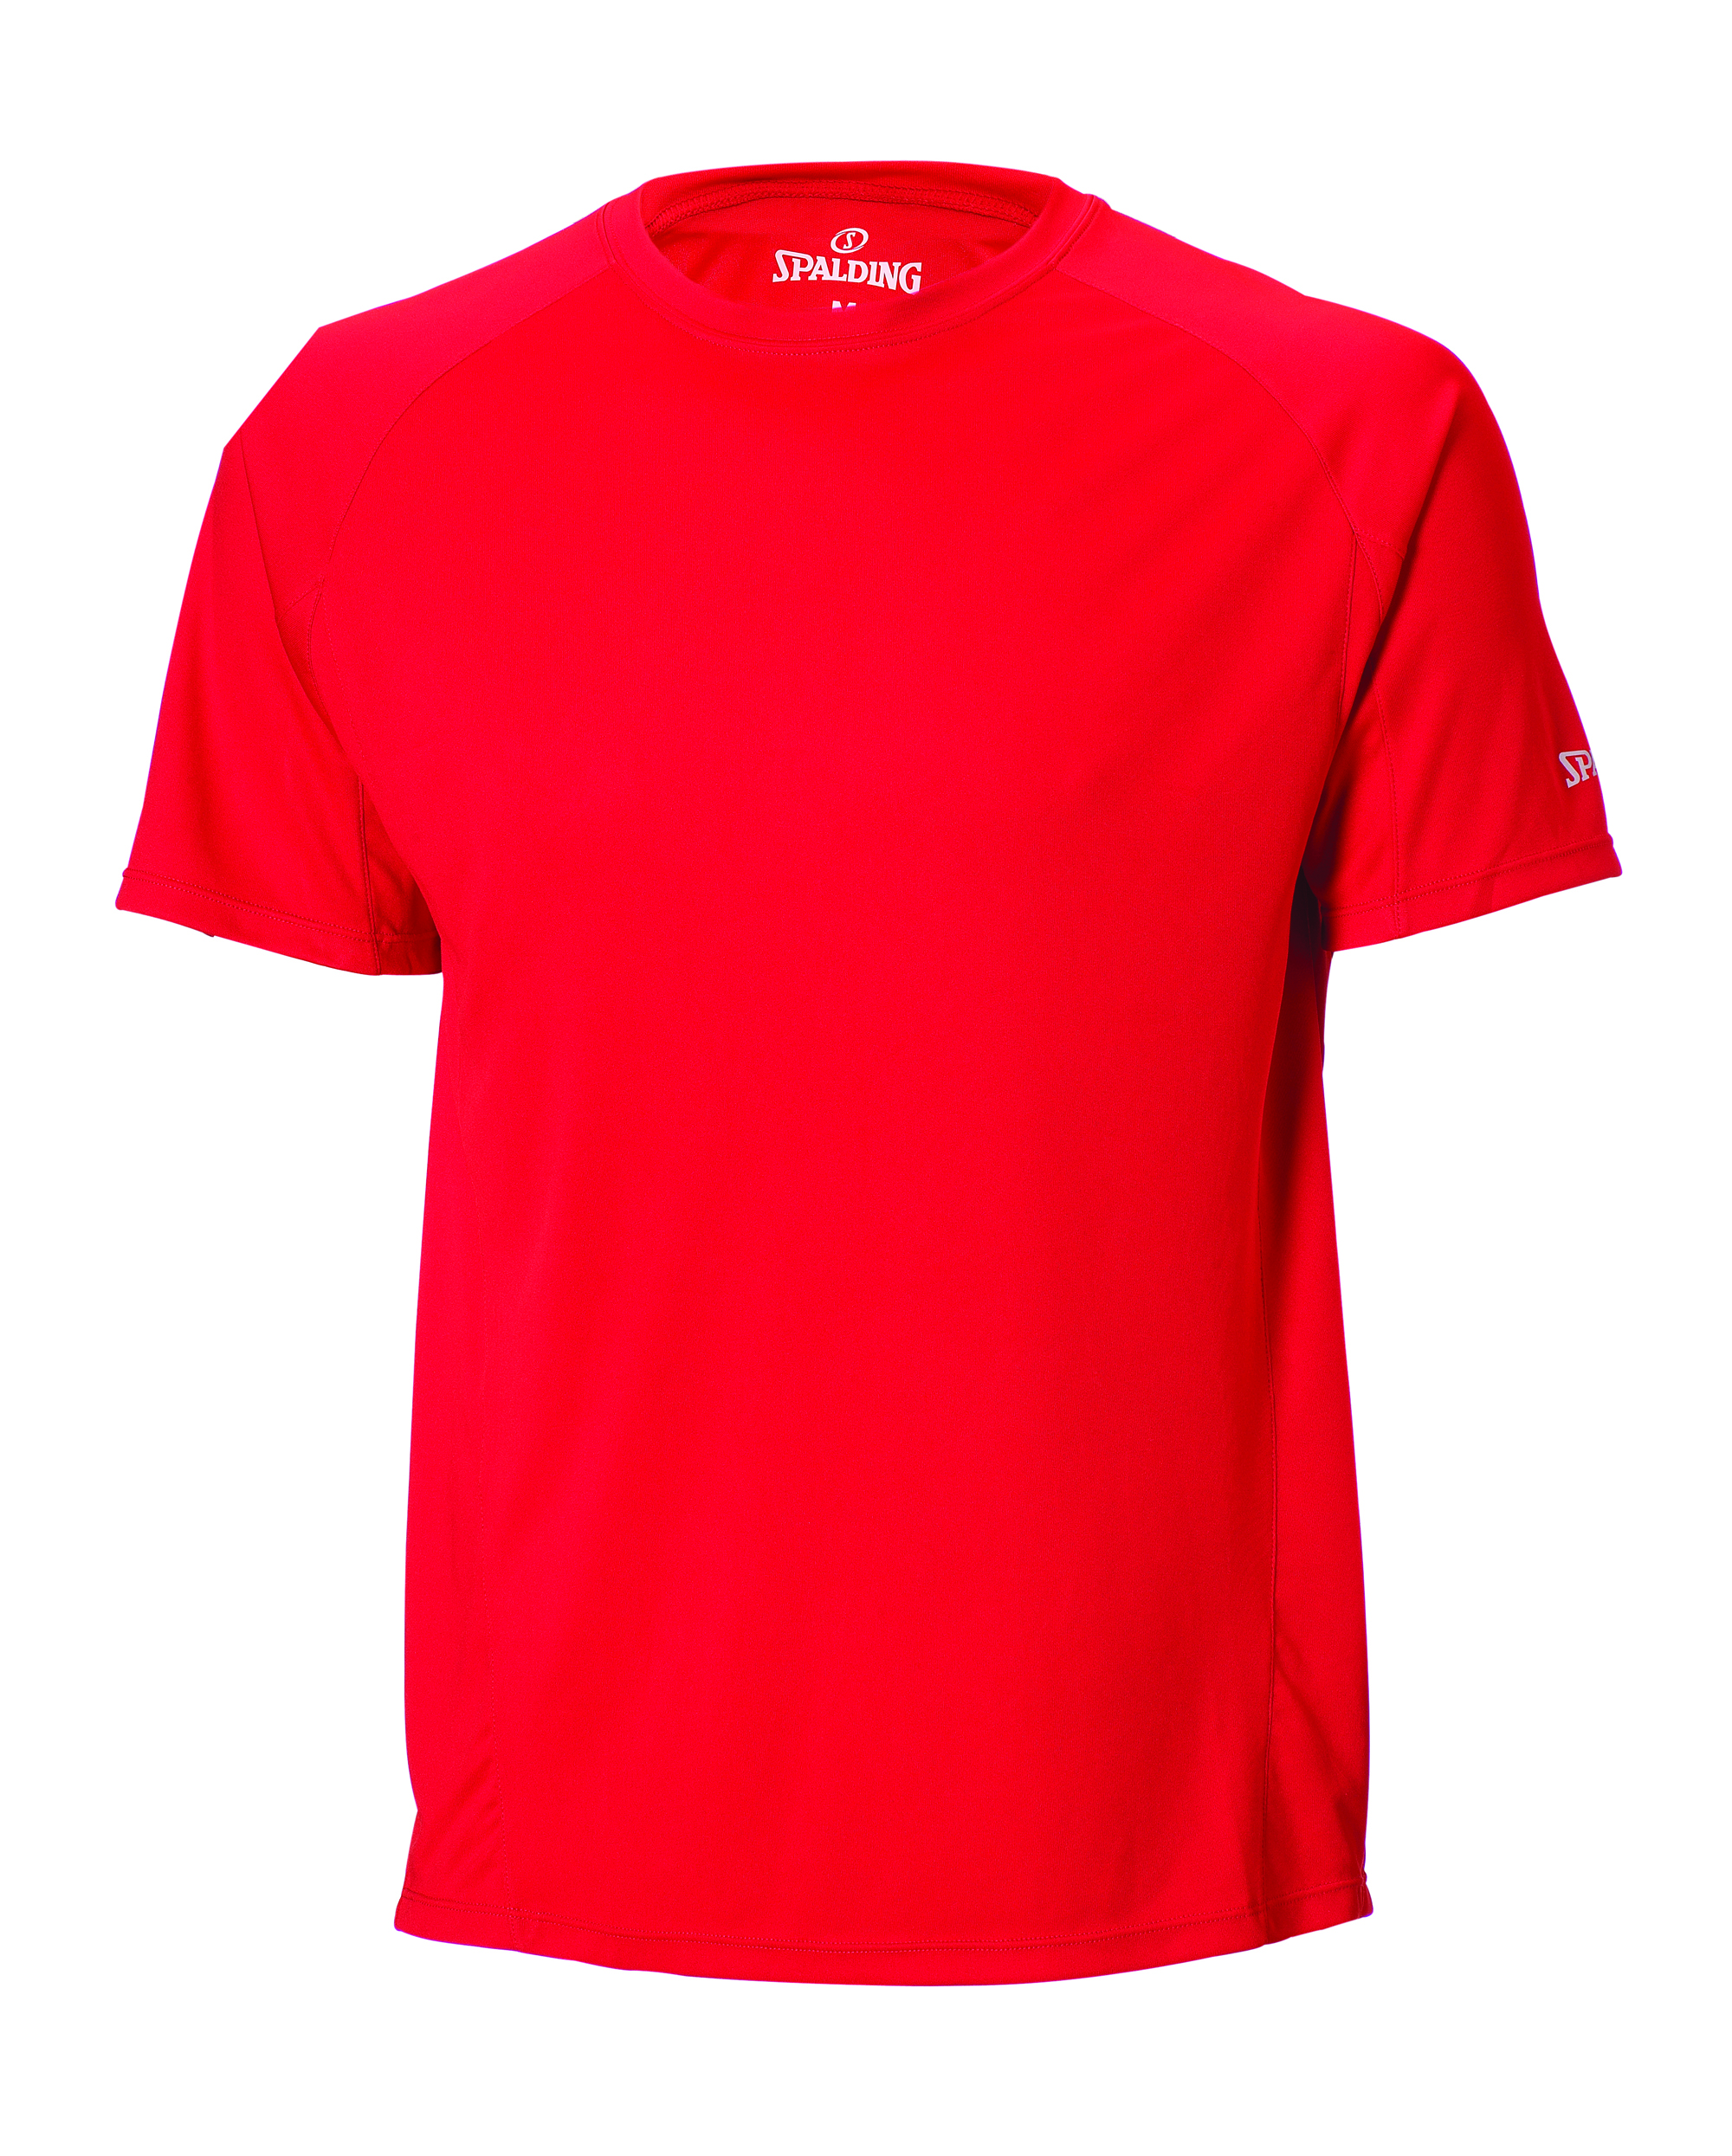 Essential Tee - Red - S